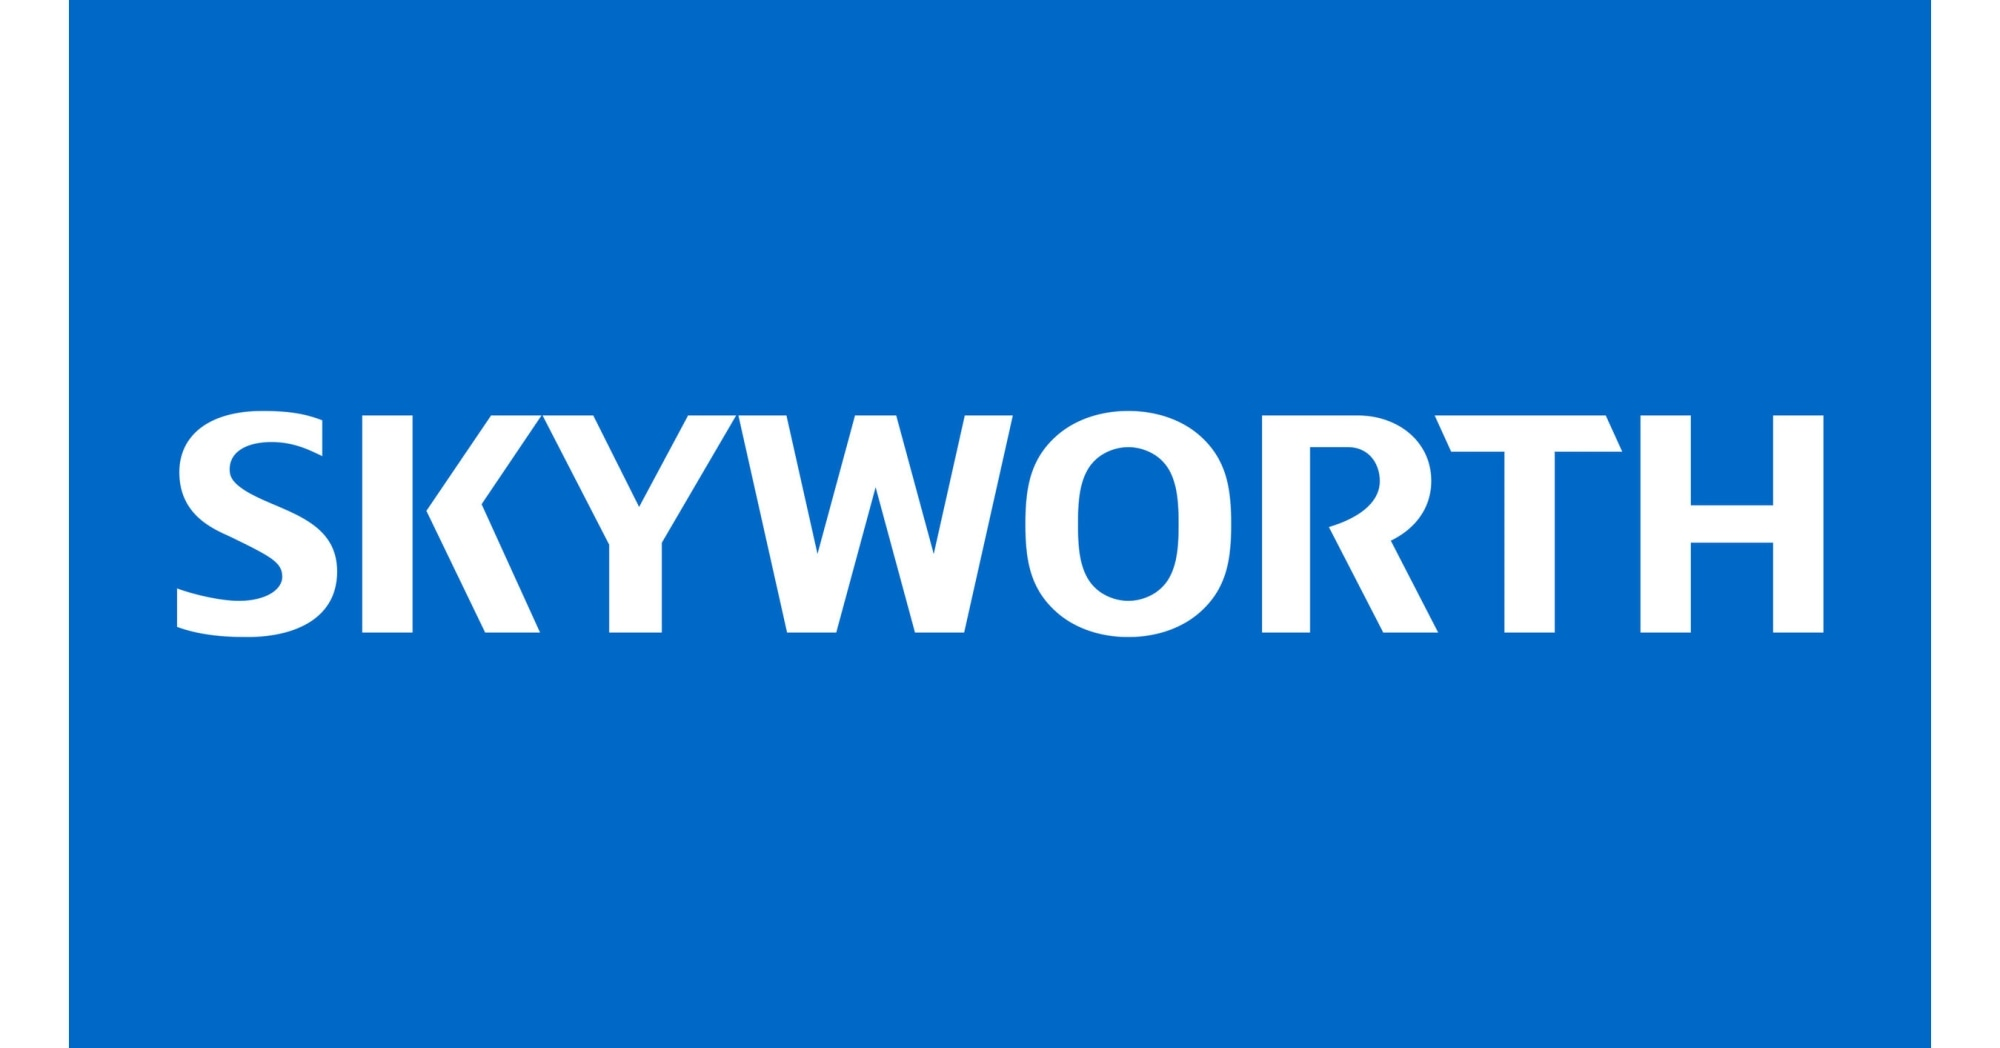 SKYWORTH